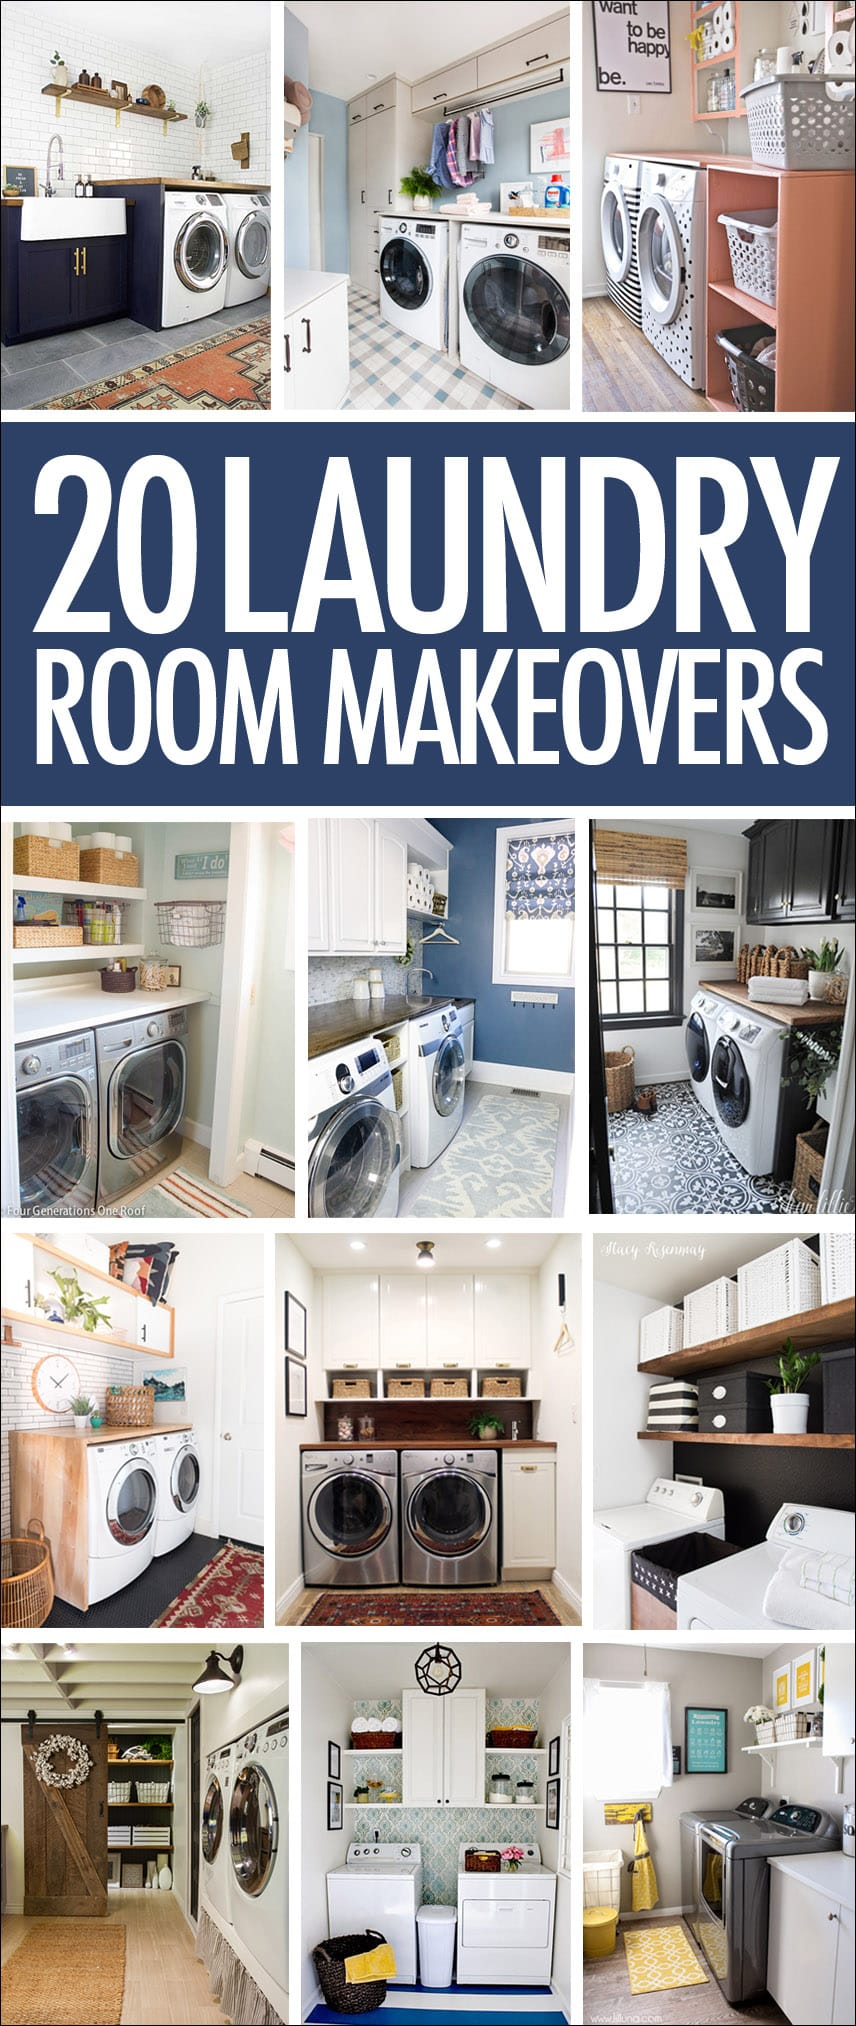 20 laundry room makeovers organization and home decor i know no one needs a pretty laundry room but man these laundry room makeovers might make doing laundry a little bit easier for more decorating ideas solutioingenieria Images